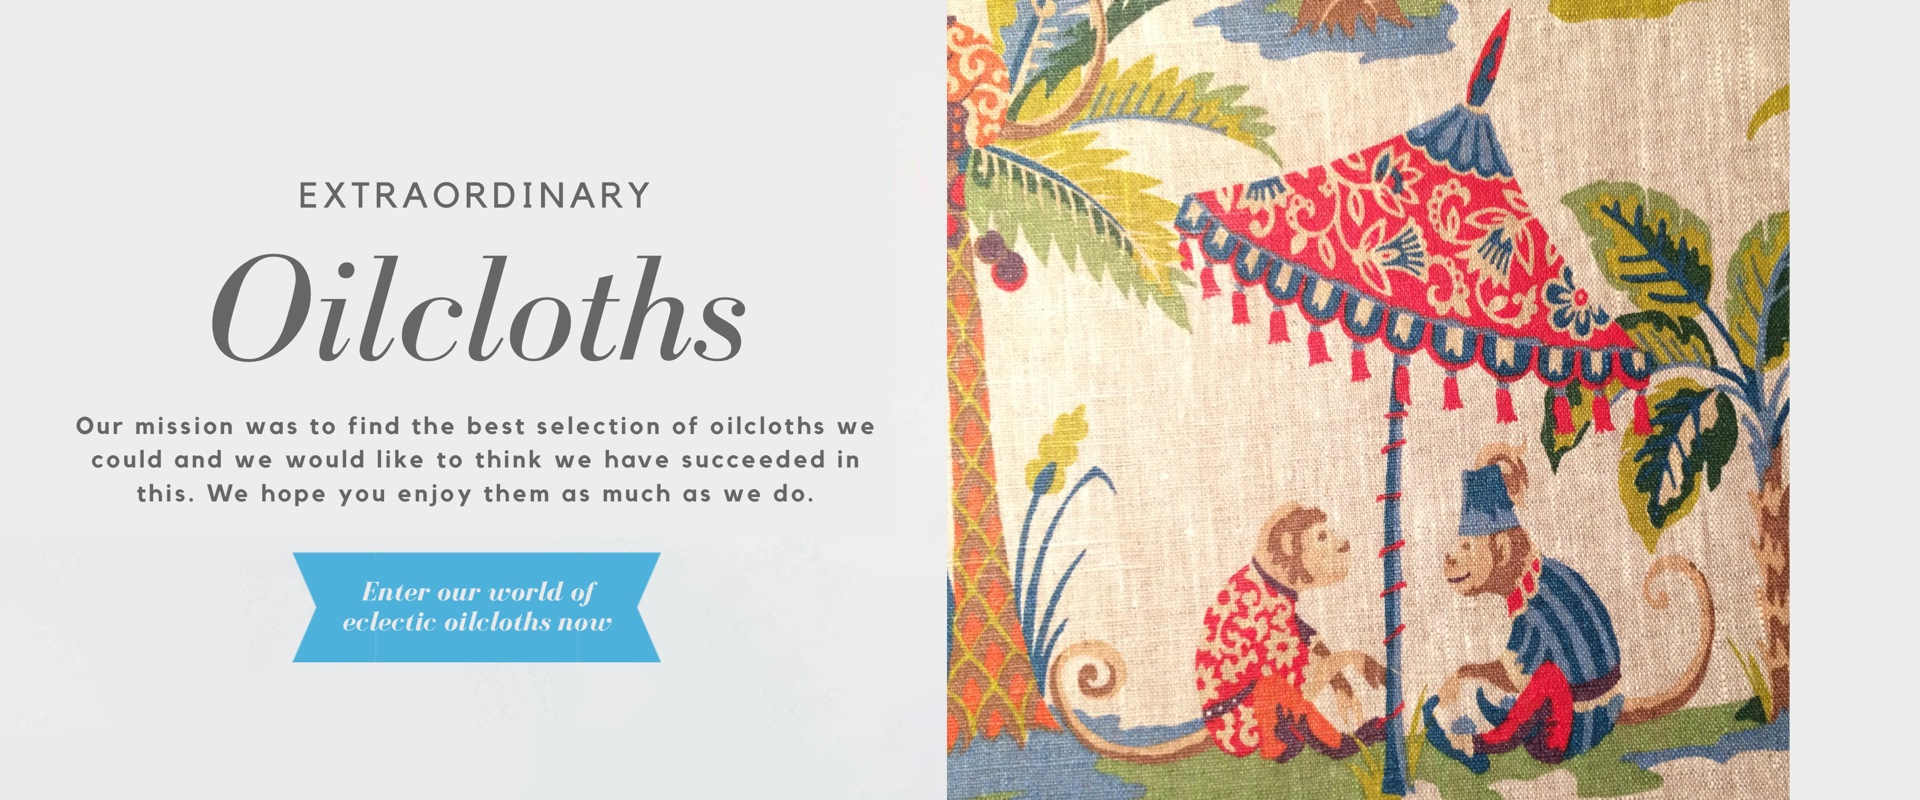 Extraordinary Oilcloths